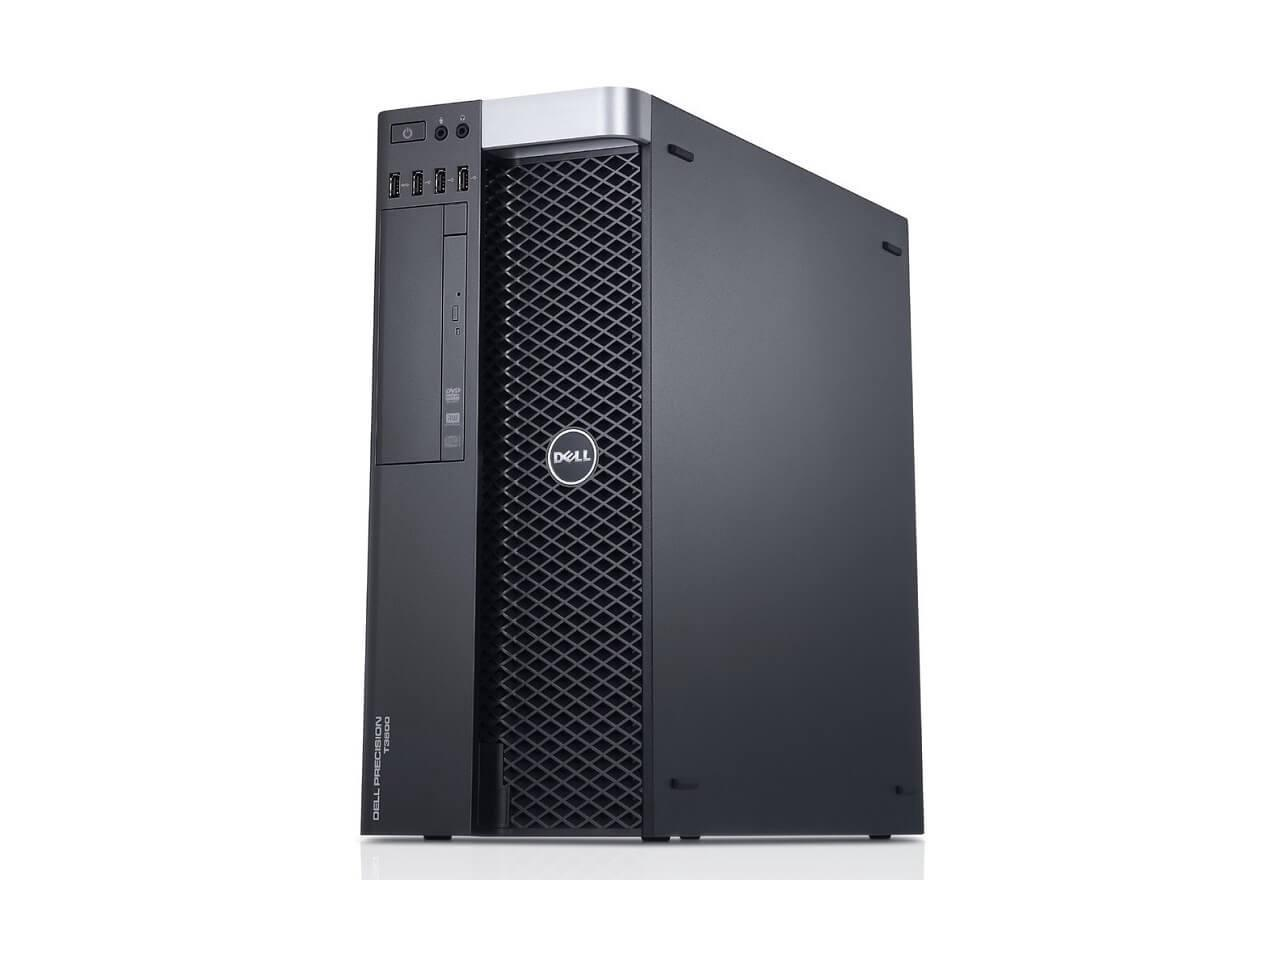 Dell Precision T3600 Workstation E5-1607 Quad Core 3Ghz 16GB 500GB Dual DVI